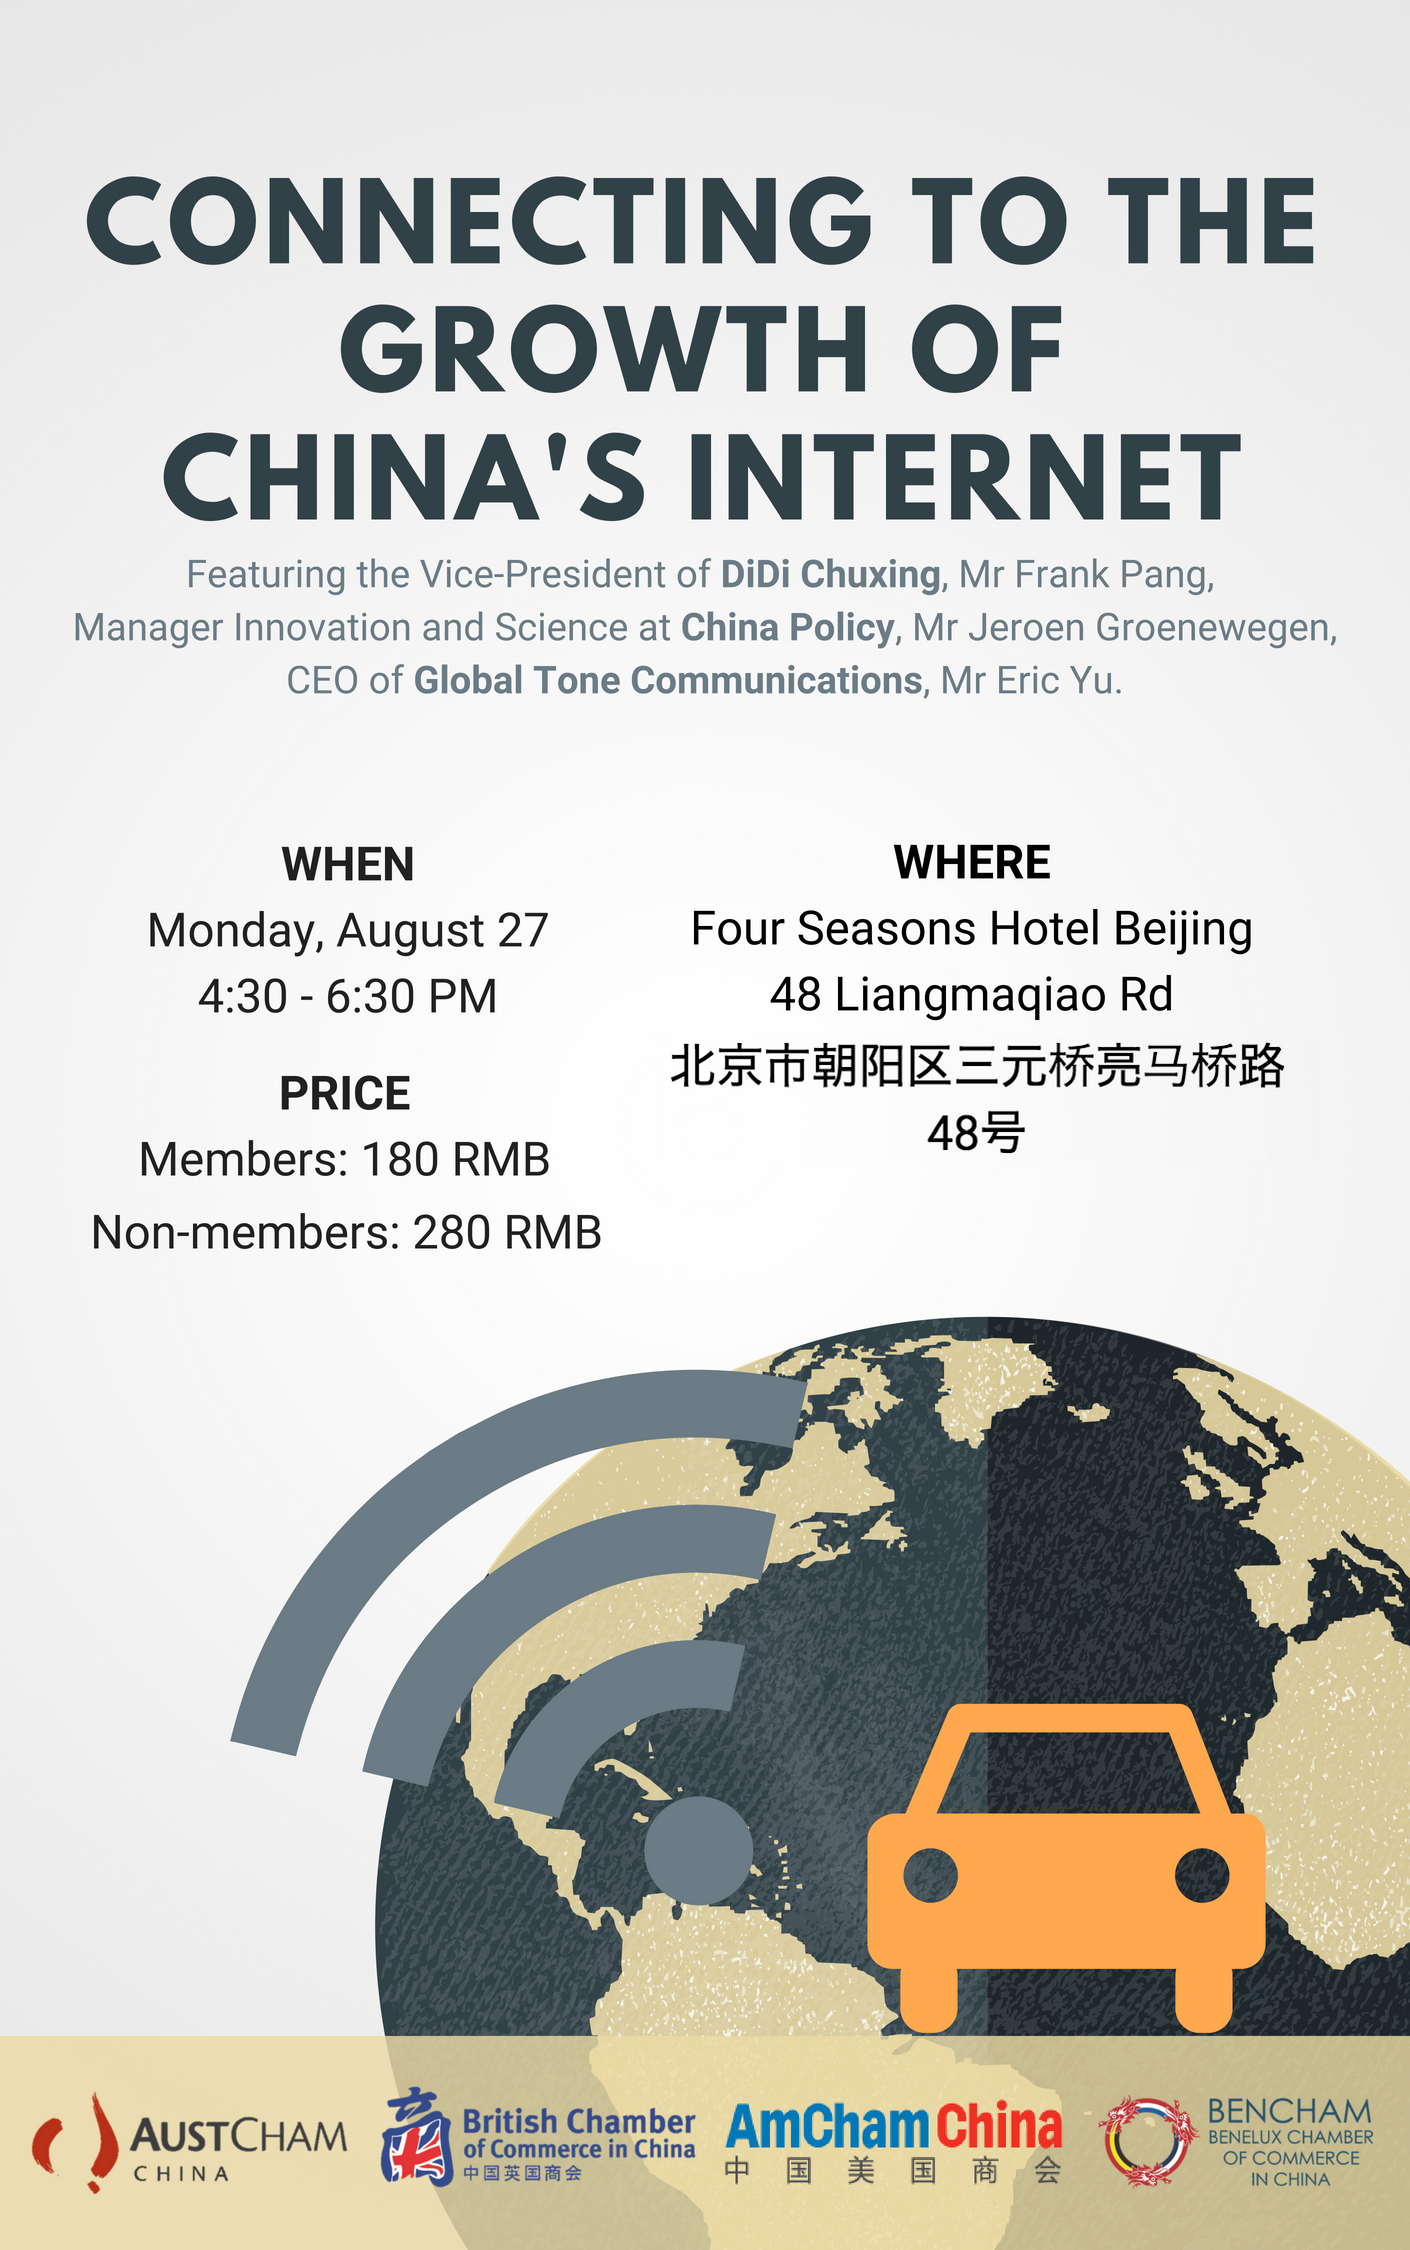 Connecting-to-the-growth-of-China27s-Internet-8.jpg